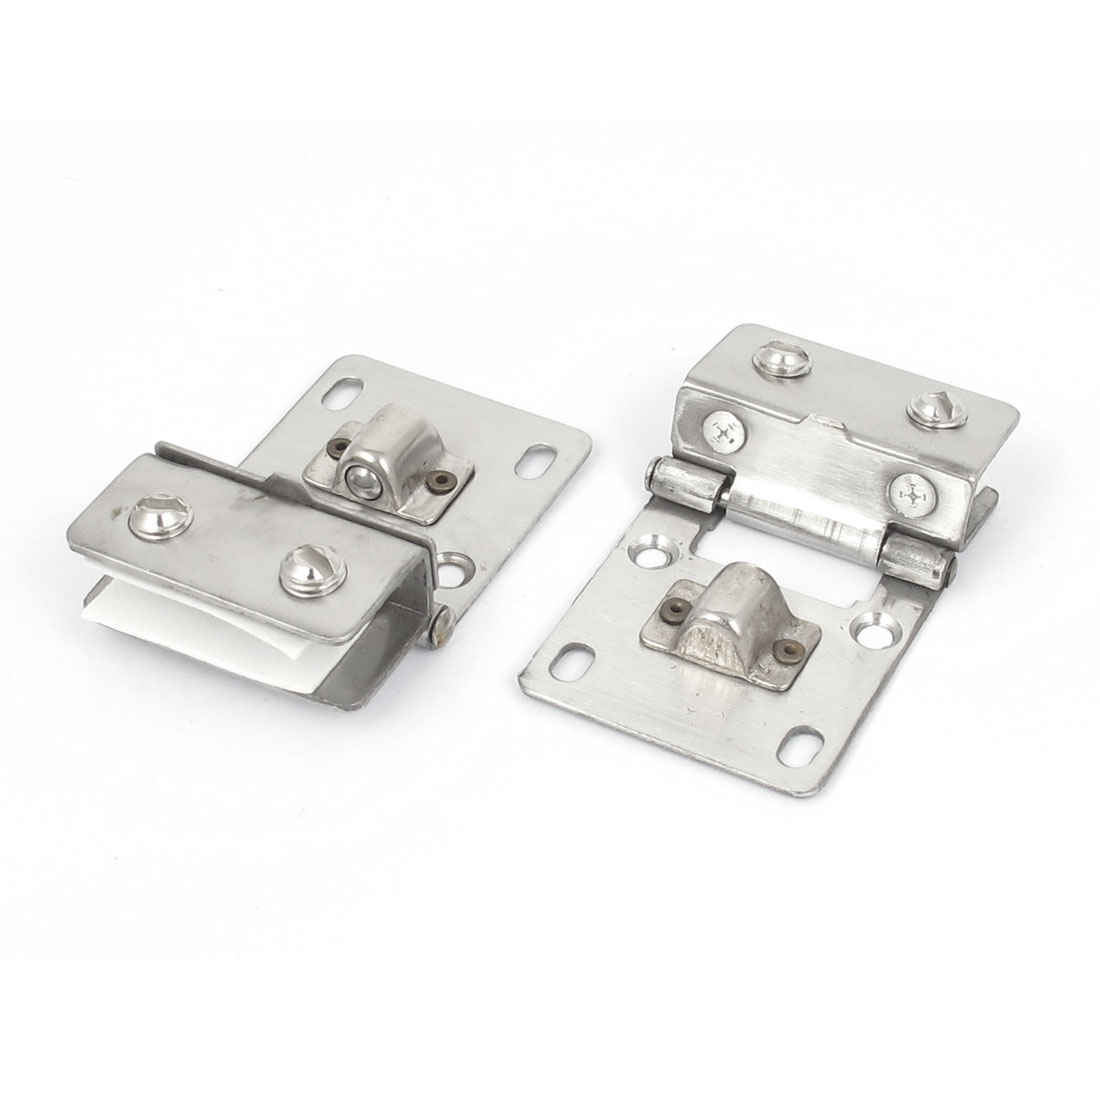 2pcs Silver Tone Metal Half Rectangle Shape Clamp Clip Holder for 10mm-8mm Thick Glass